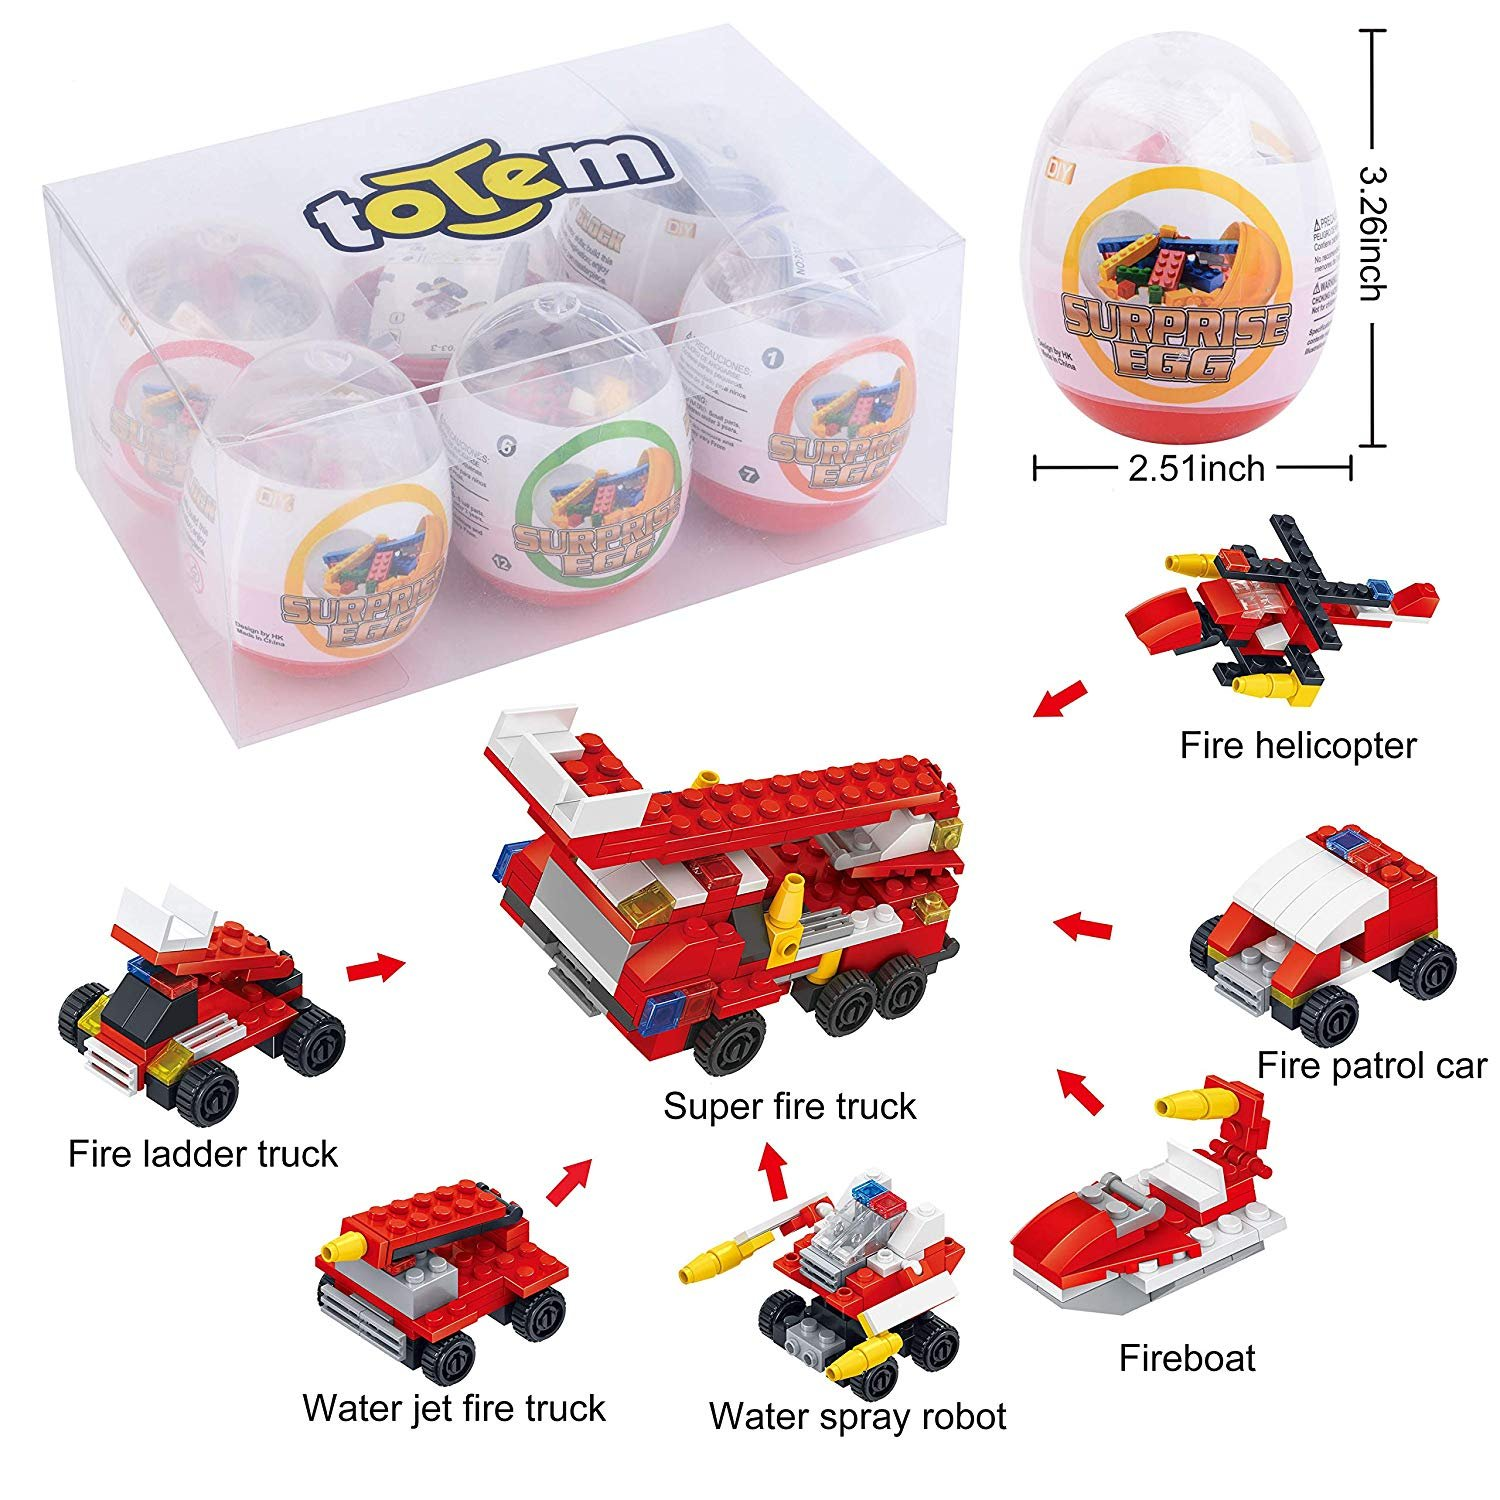 "6 Filled Easter Egg Building Toys - Fireman Vehicle Set - Age 6-12 Learning Educational Inside 3"" Large Plastic Egg - Great for Easter Basket Stuffers - Combine to Build a Fire Truck"